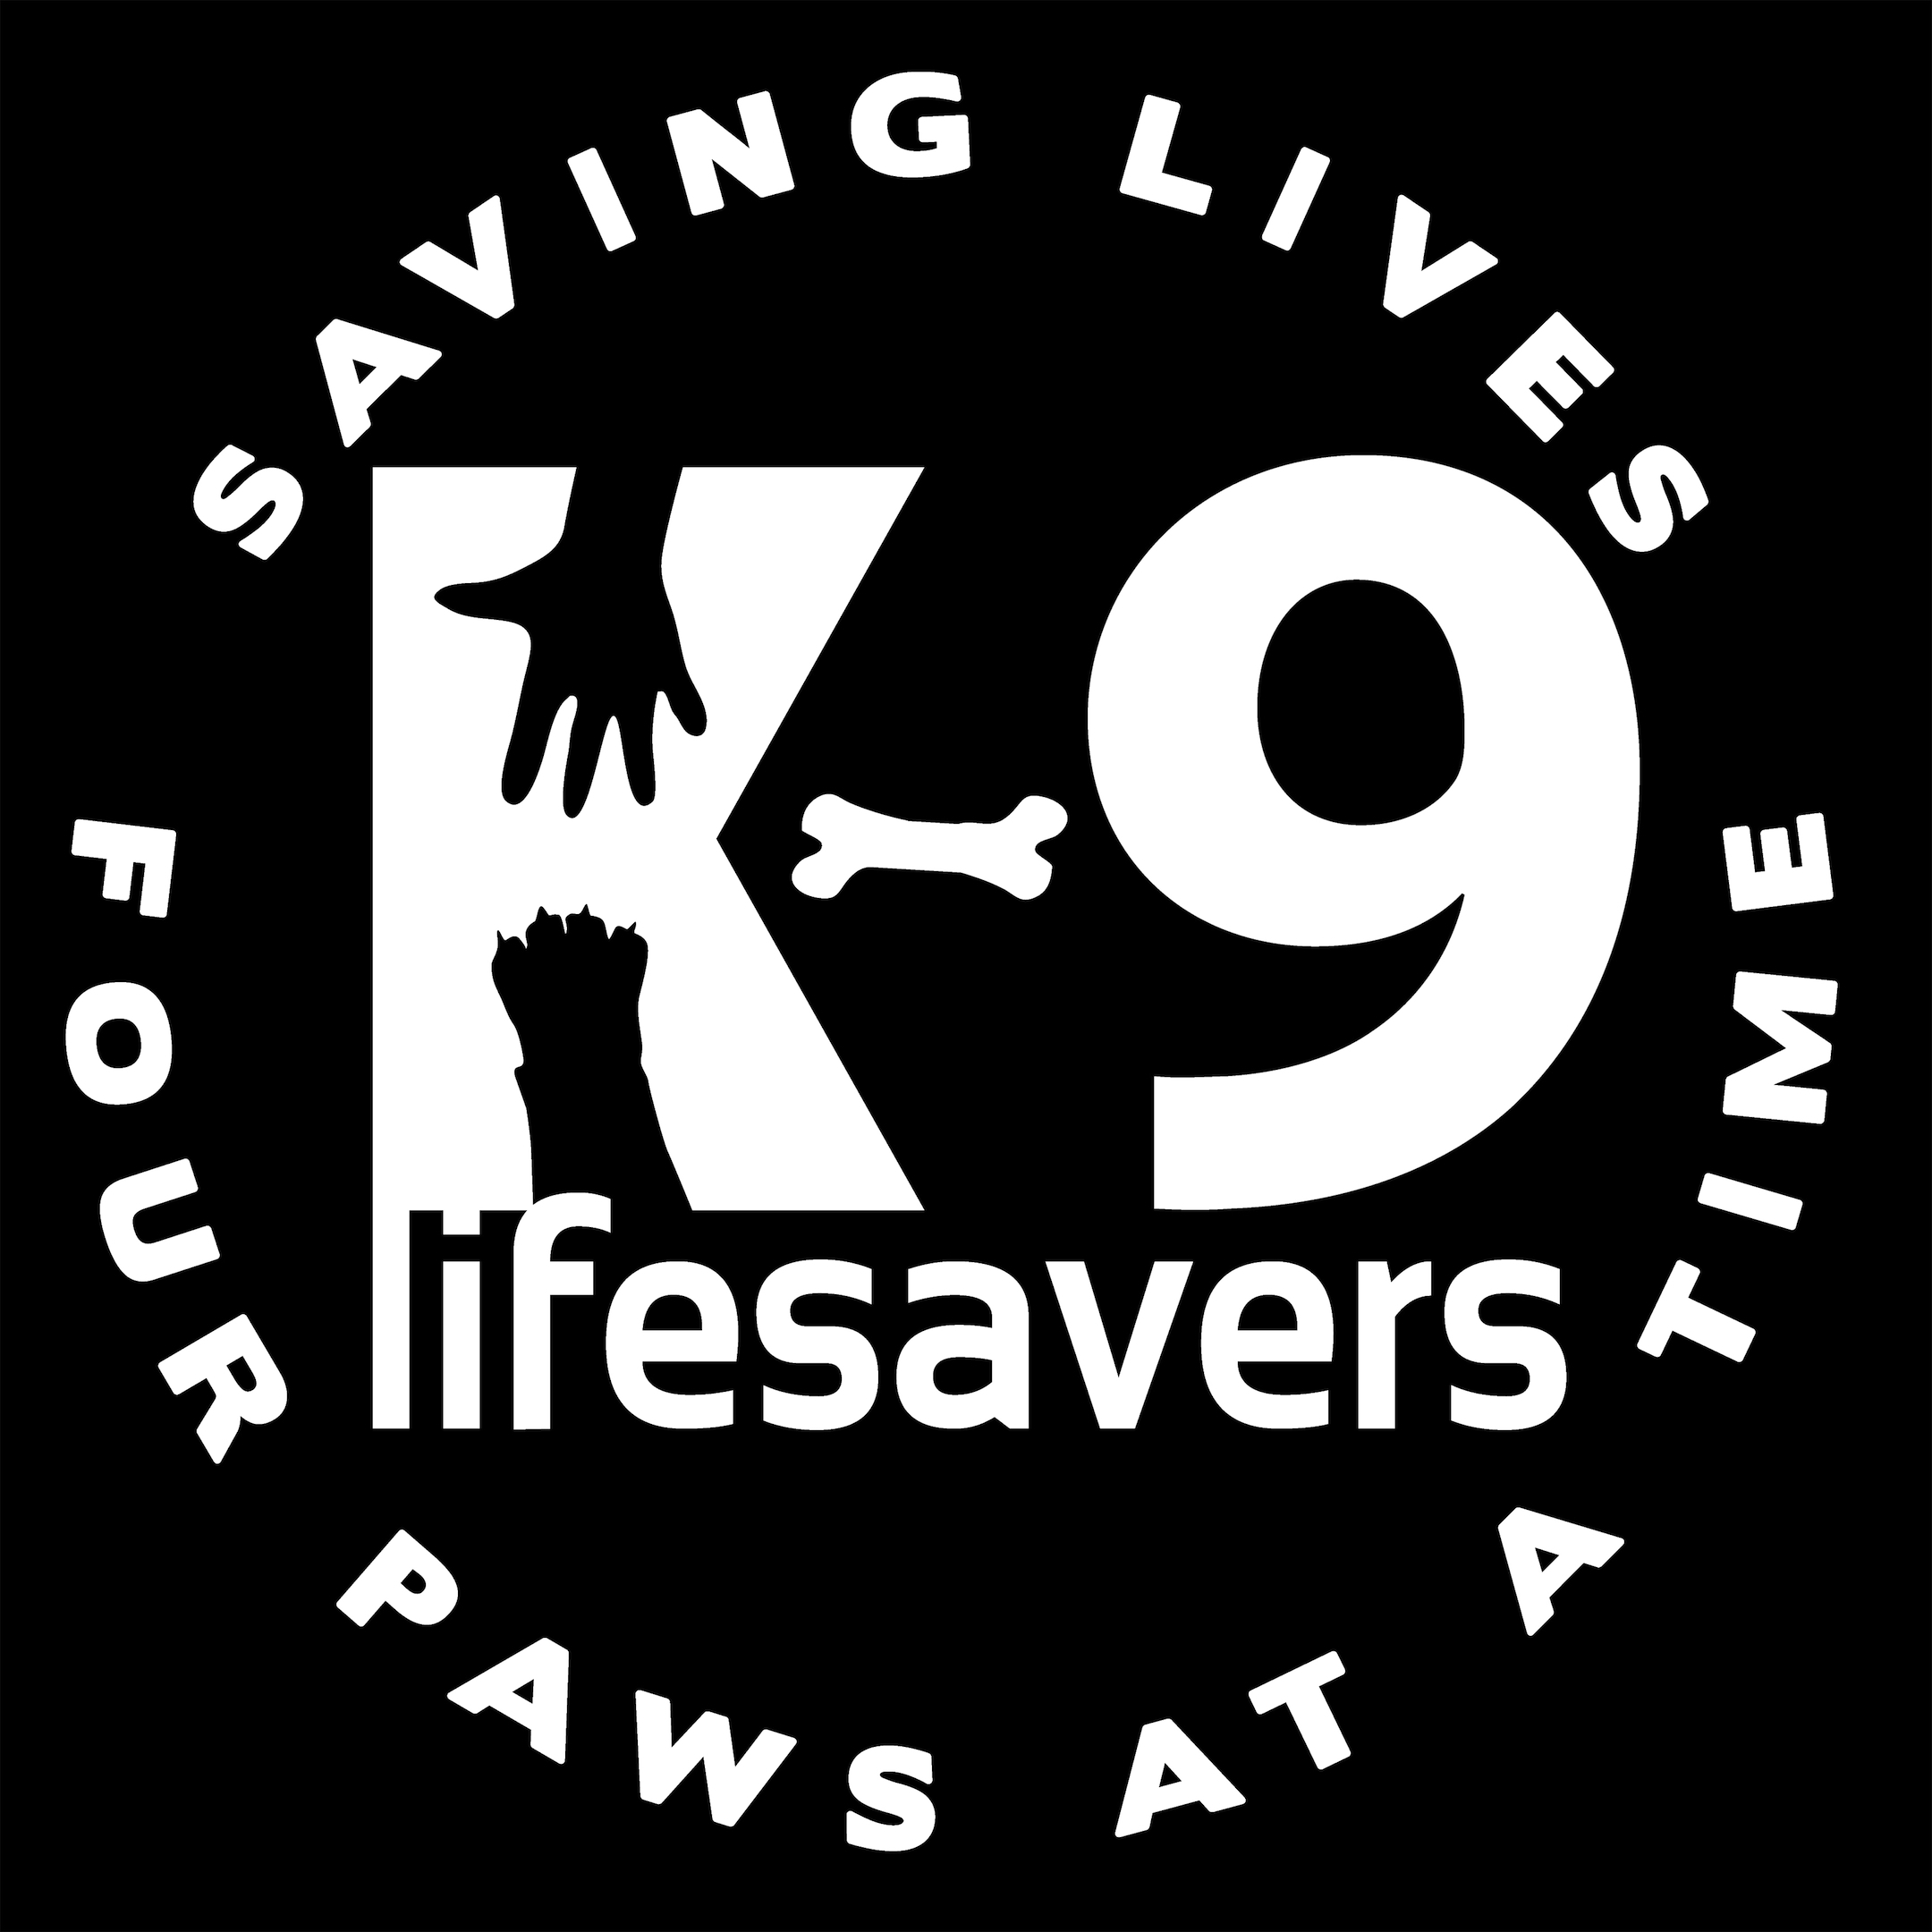 K-9 Lifesavers